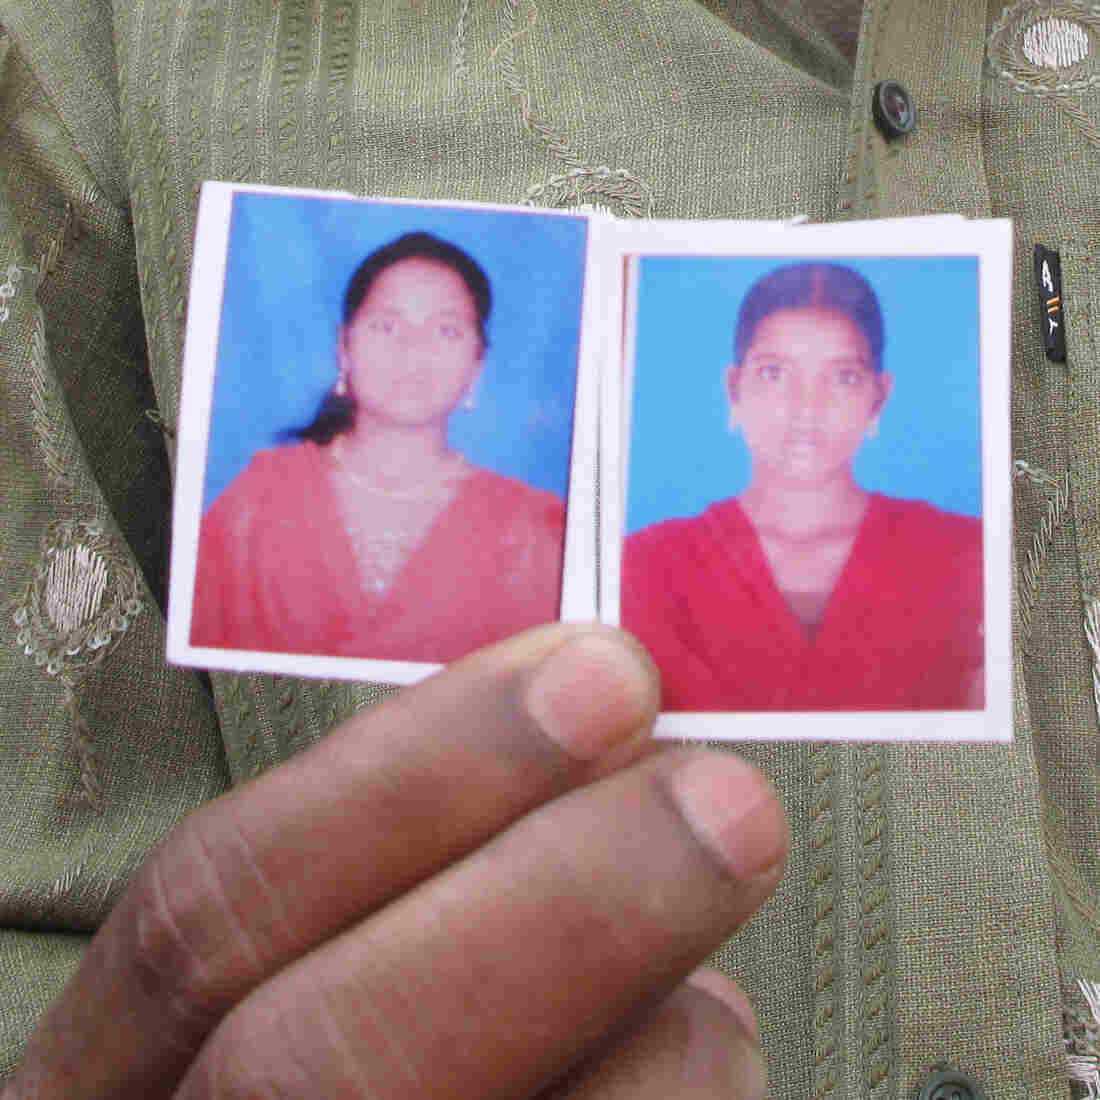 Double Rape, Lynching In India Exposes Caste Fault Lines